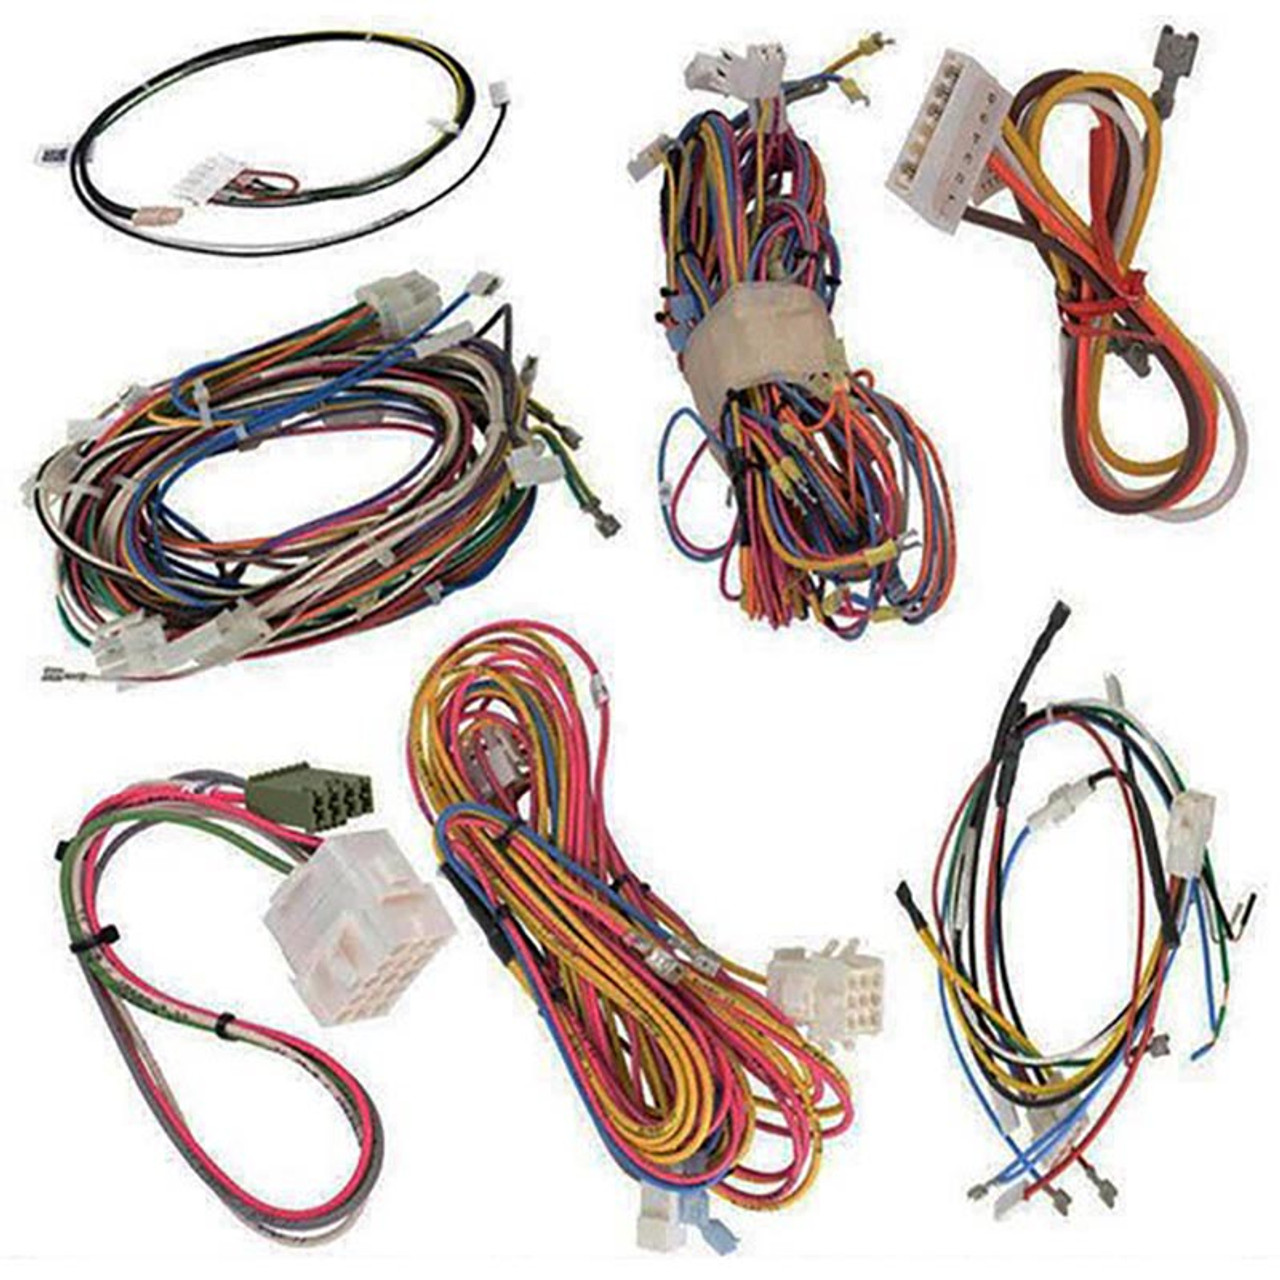 70m63 12 pin wiring harness Pioneer 12 Pin Wiring Harness